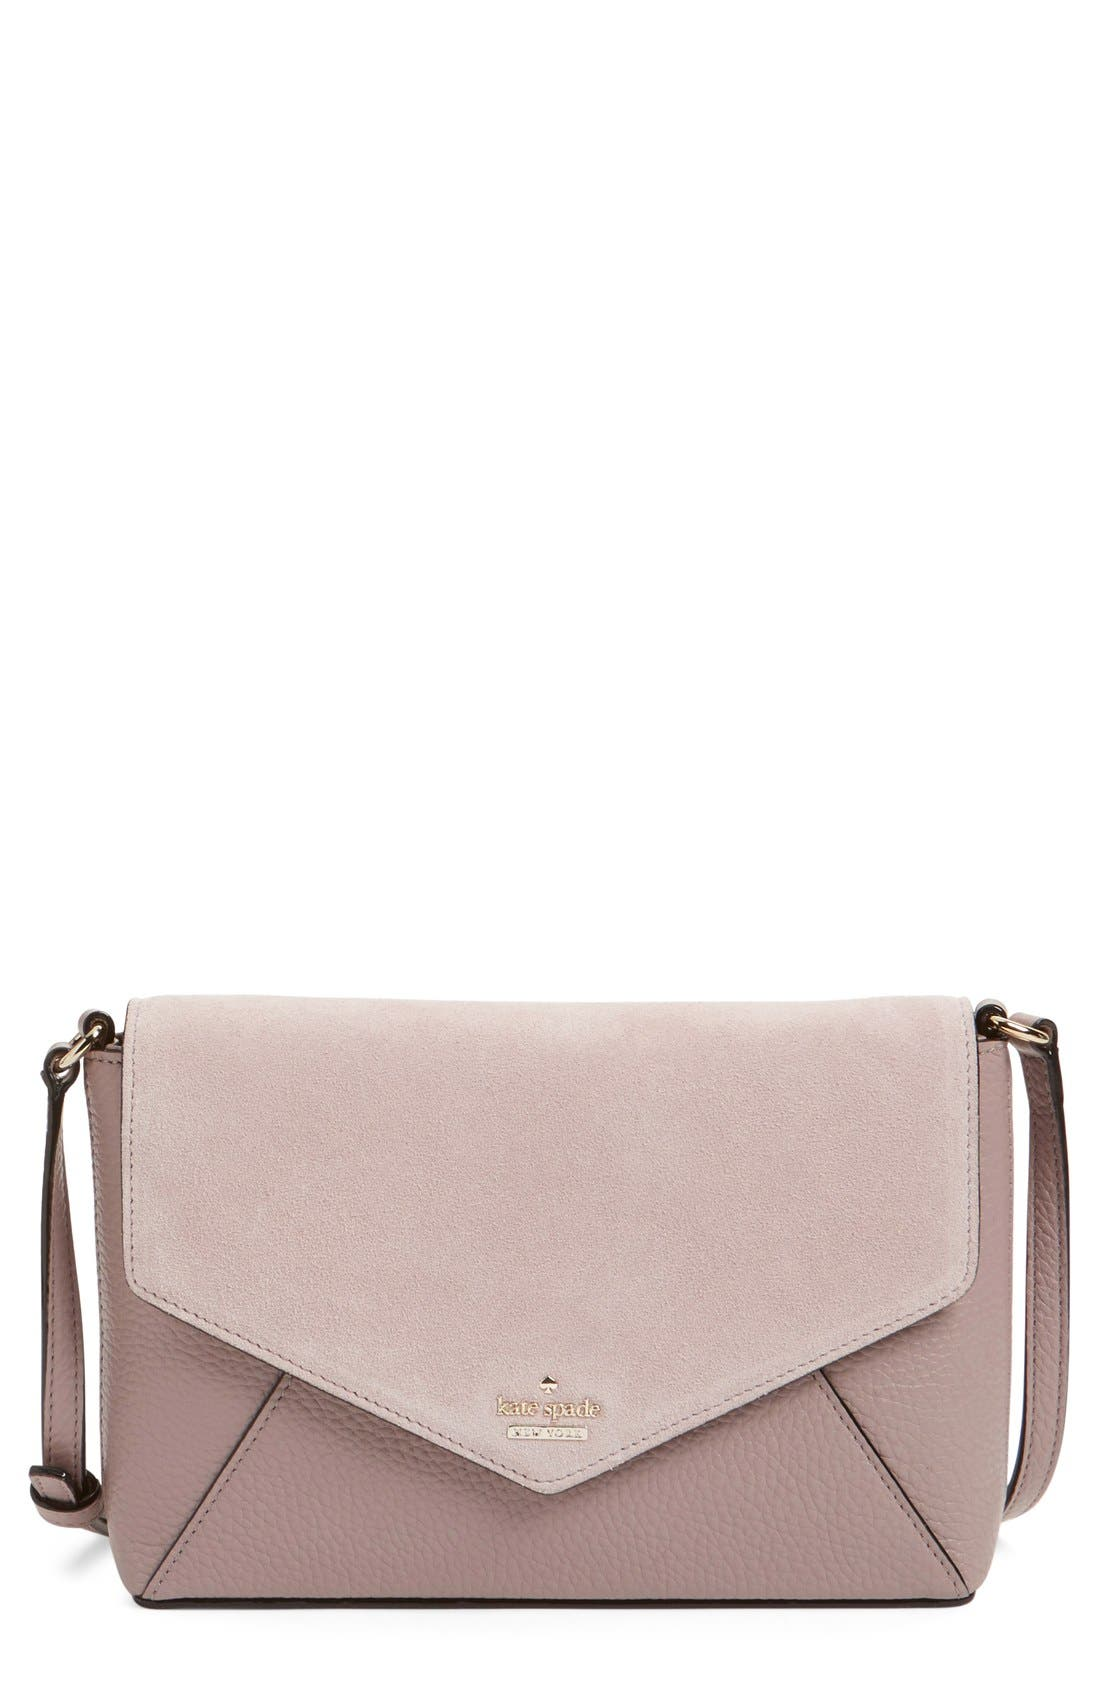 Alternate Image 1 Selected - kate spade new york 'spencer court - large monday' suede & leather envelope crossbody bag (Nordstrom Exclusive)